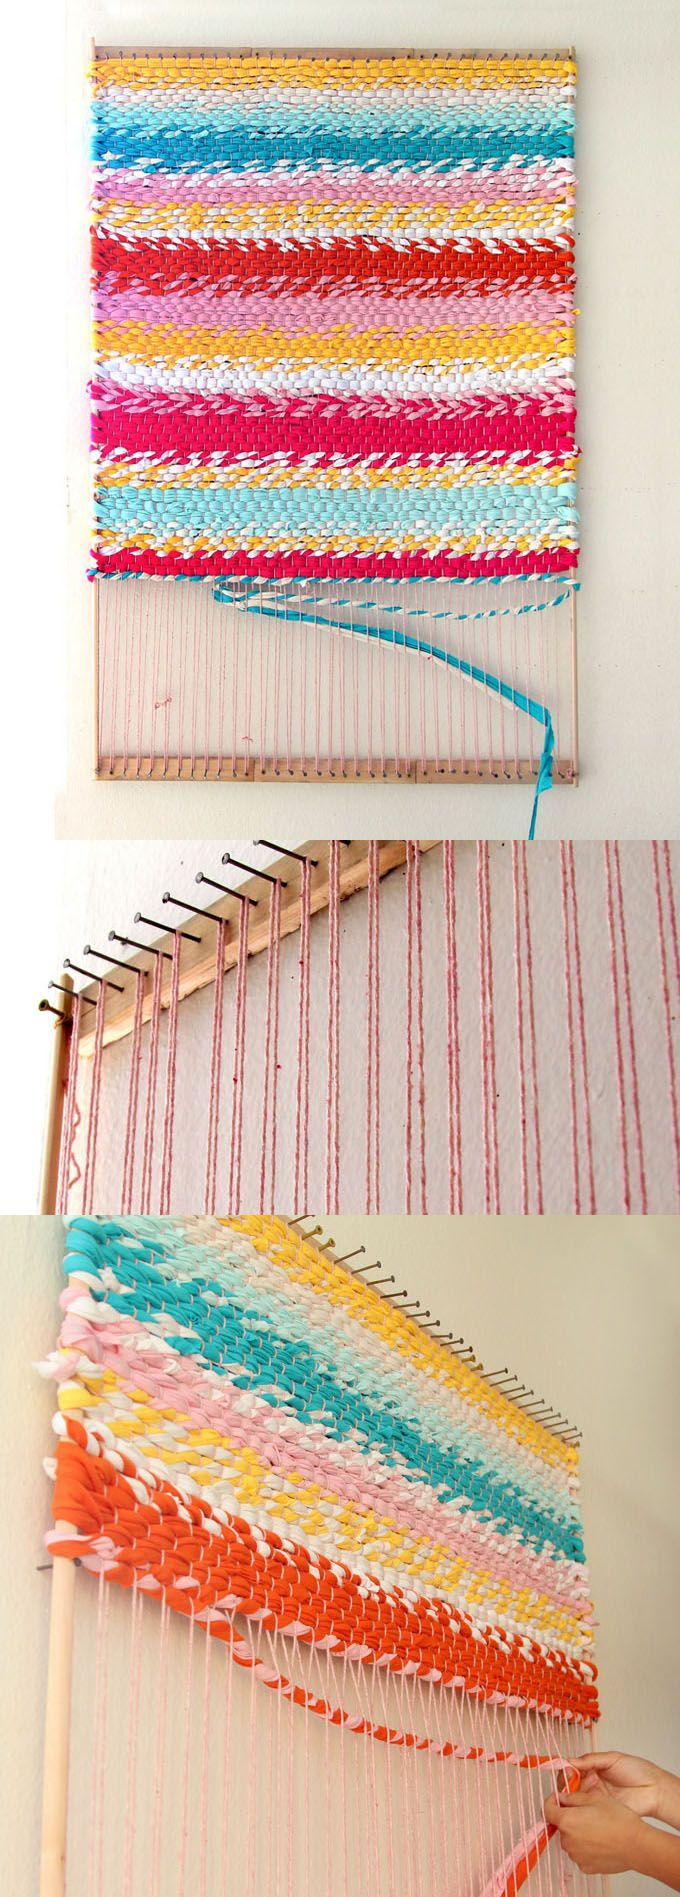 Très Weave a T-shirt Rug With Easy DIY Loom | Tissage, Tapis et Macramé BQ82